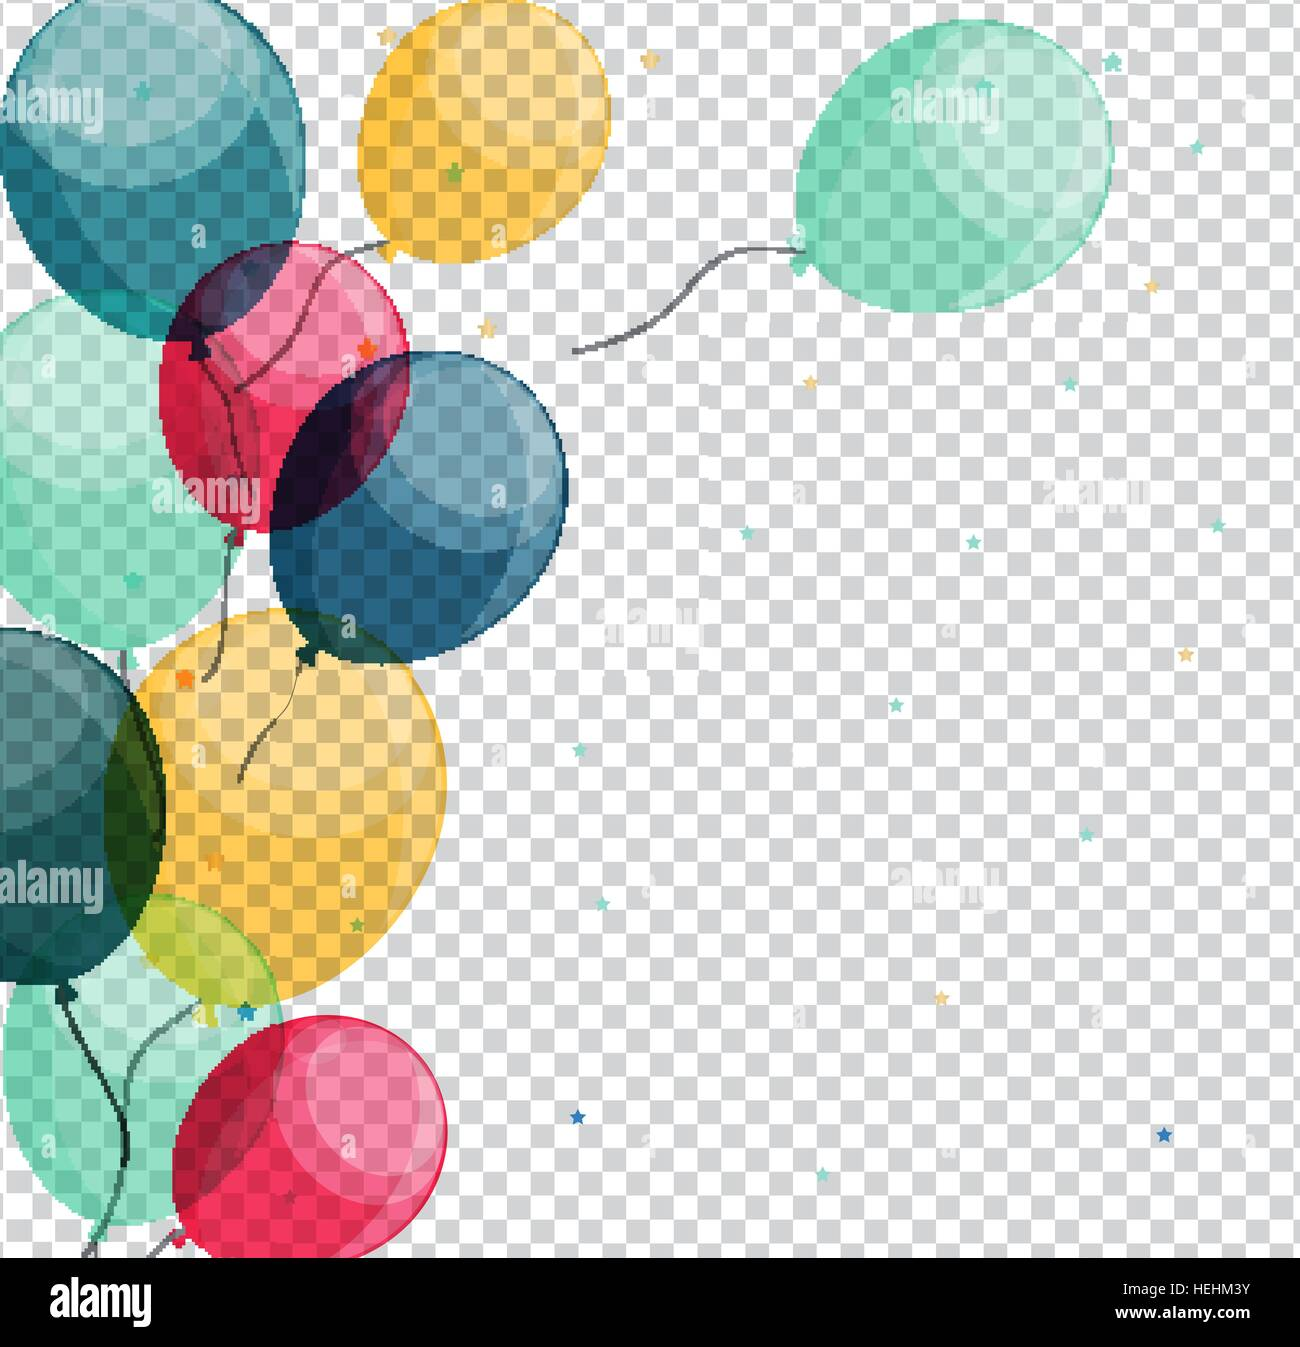 Happy Birthday Balloons And Cake Pictures